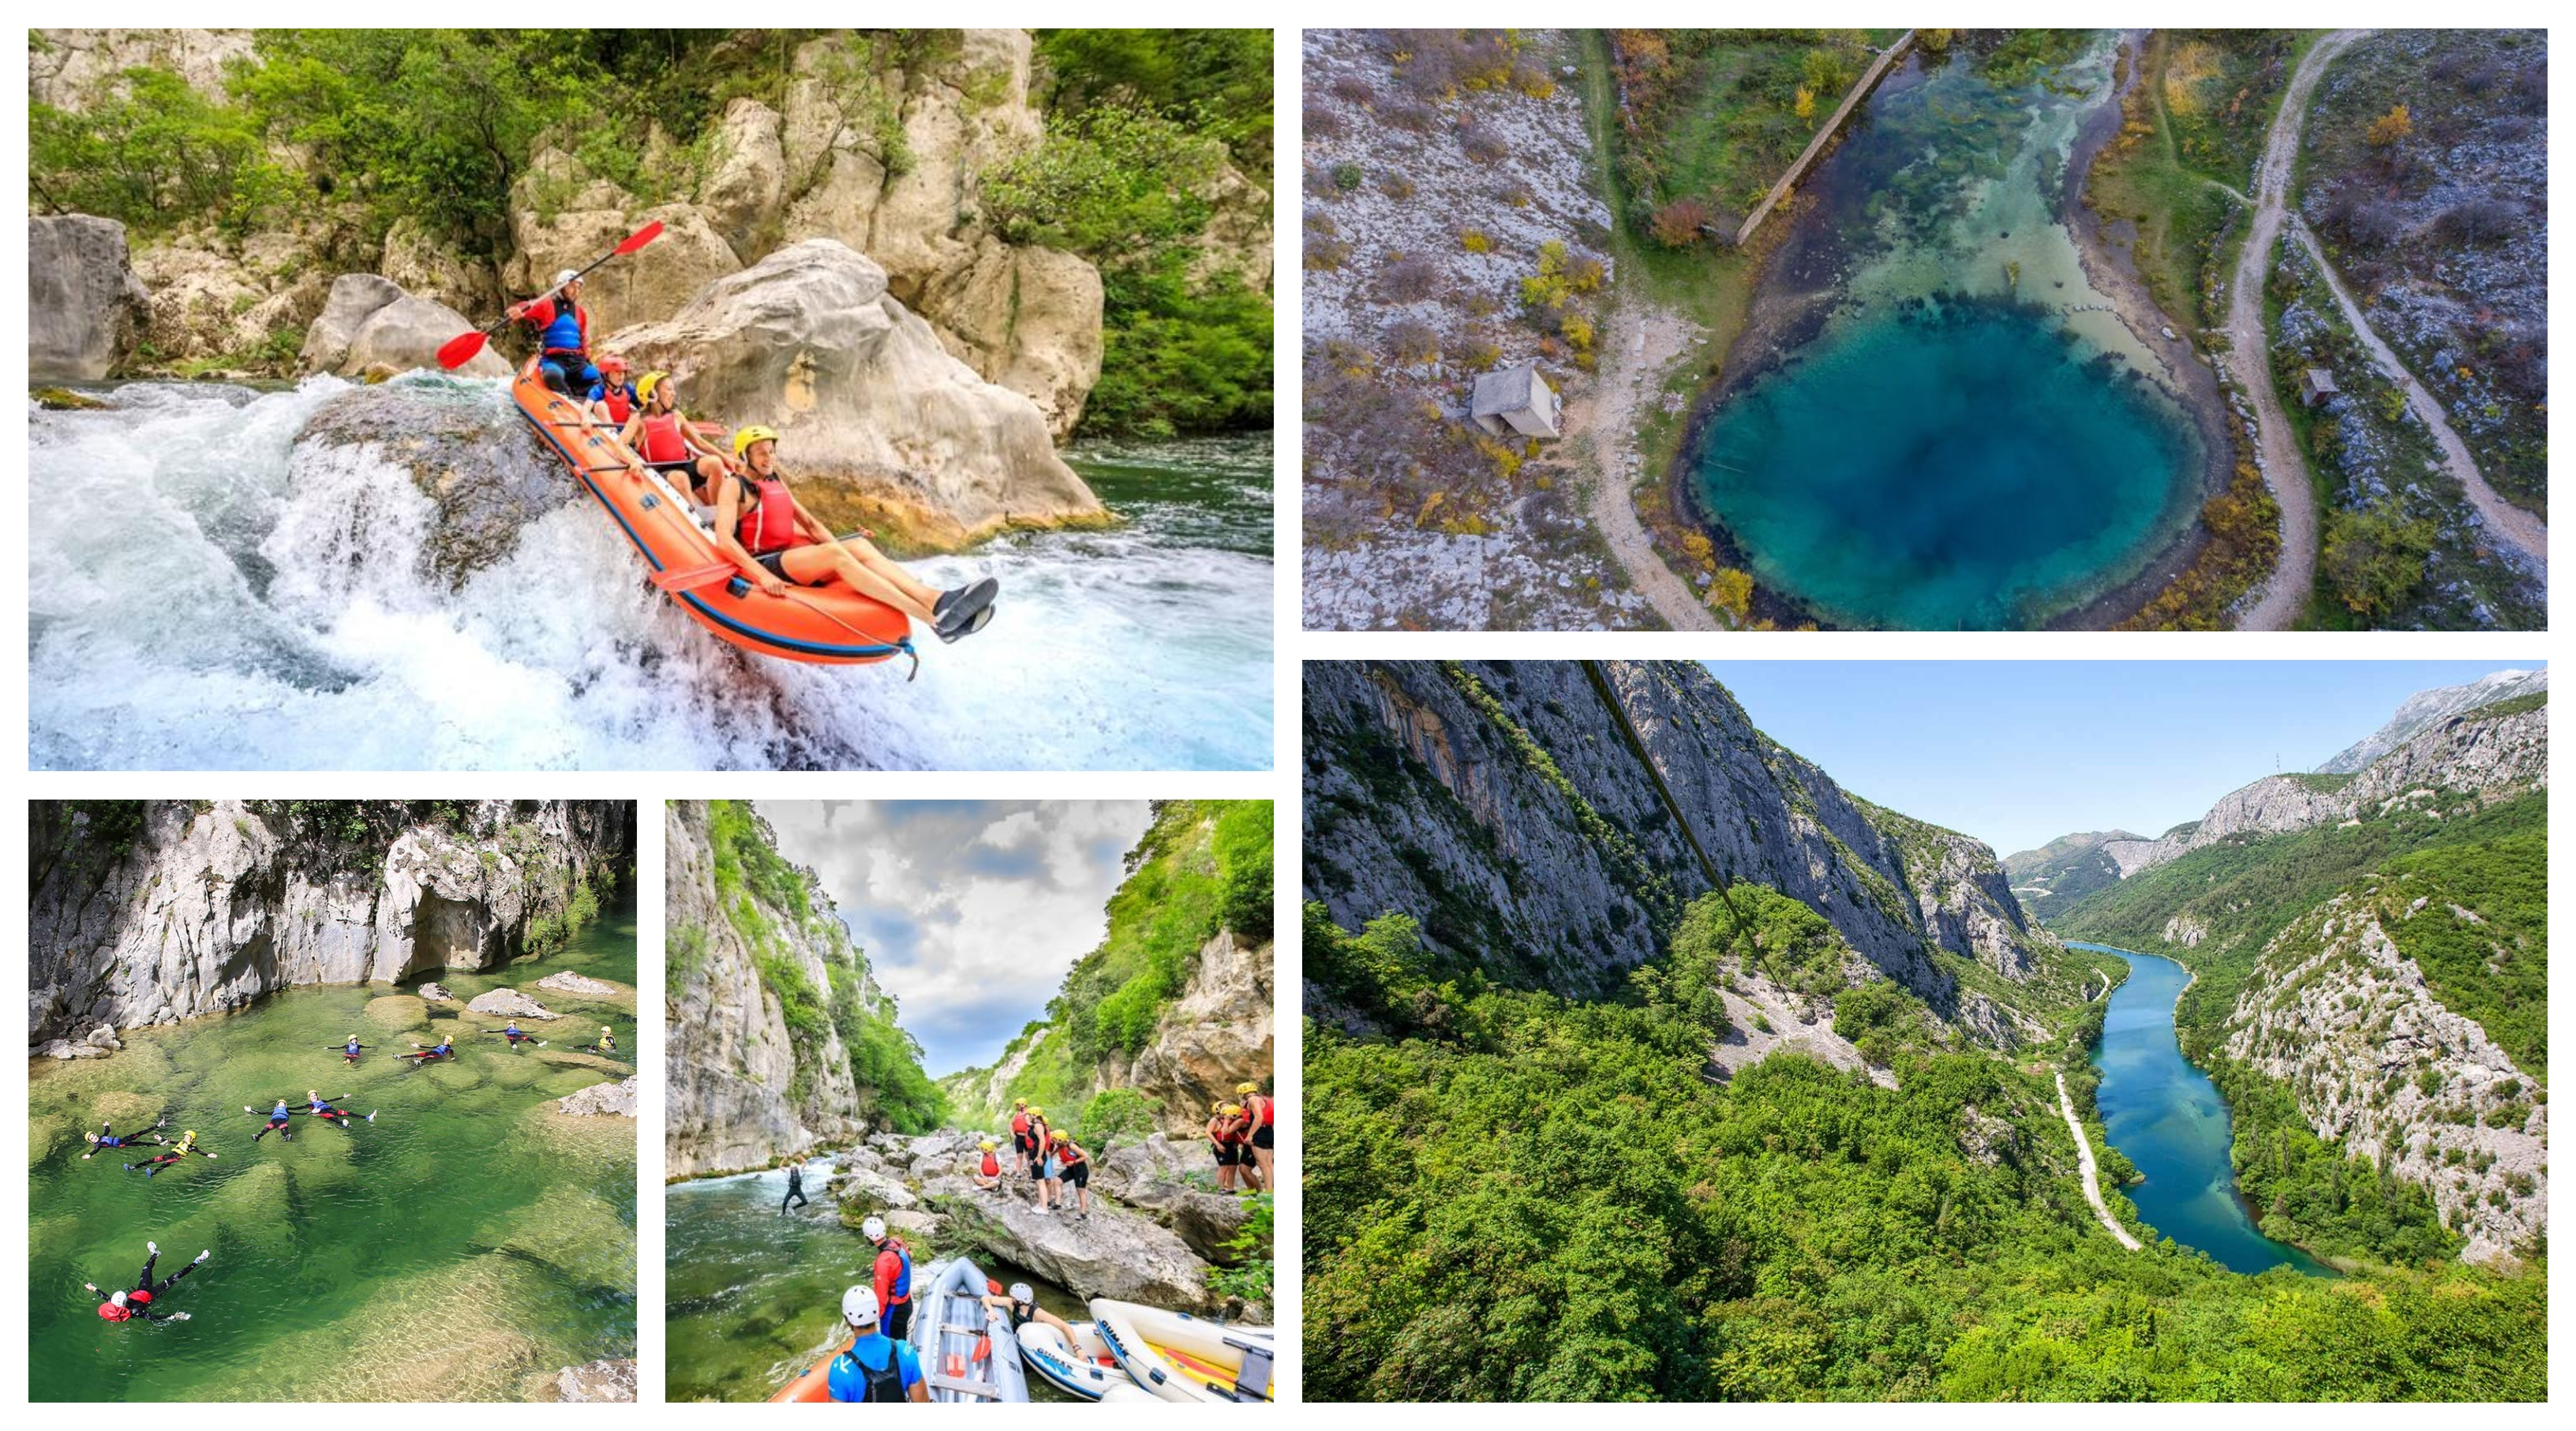 Rafting and Canyoning in Cetina River